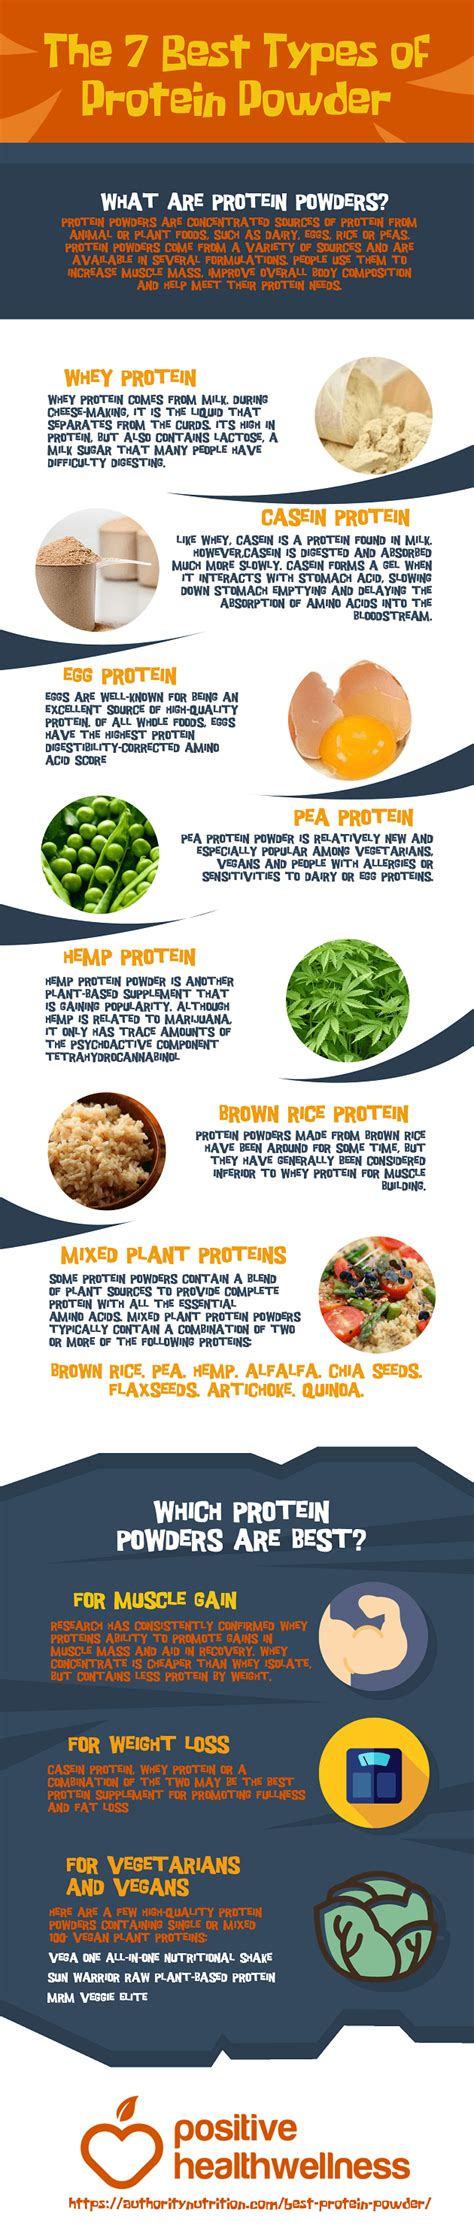 7 protein powder the 7 best types of protein powder infographic